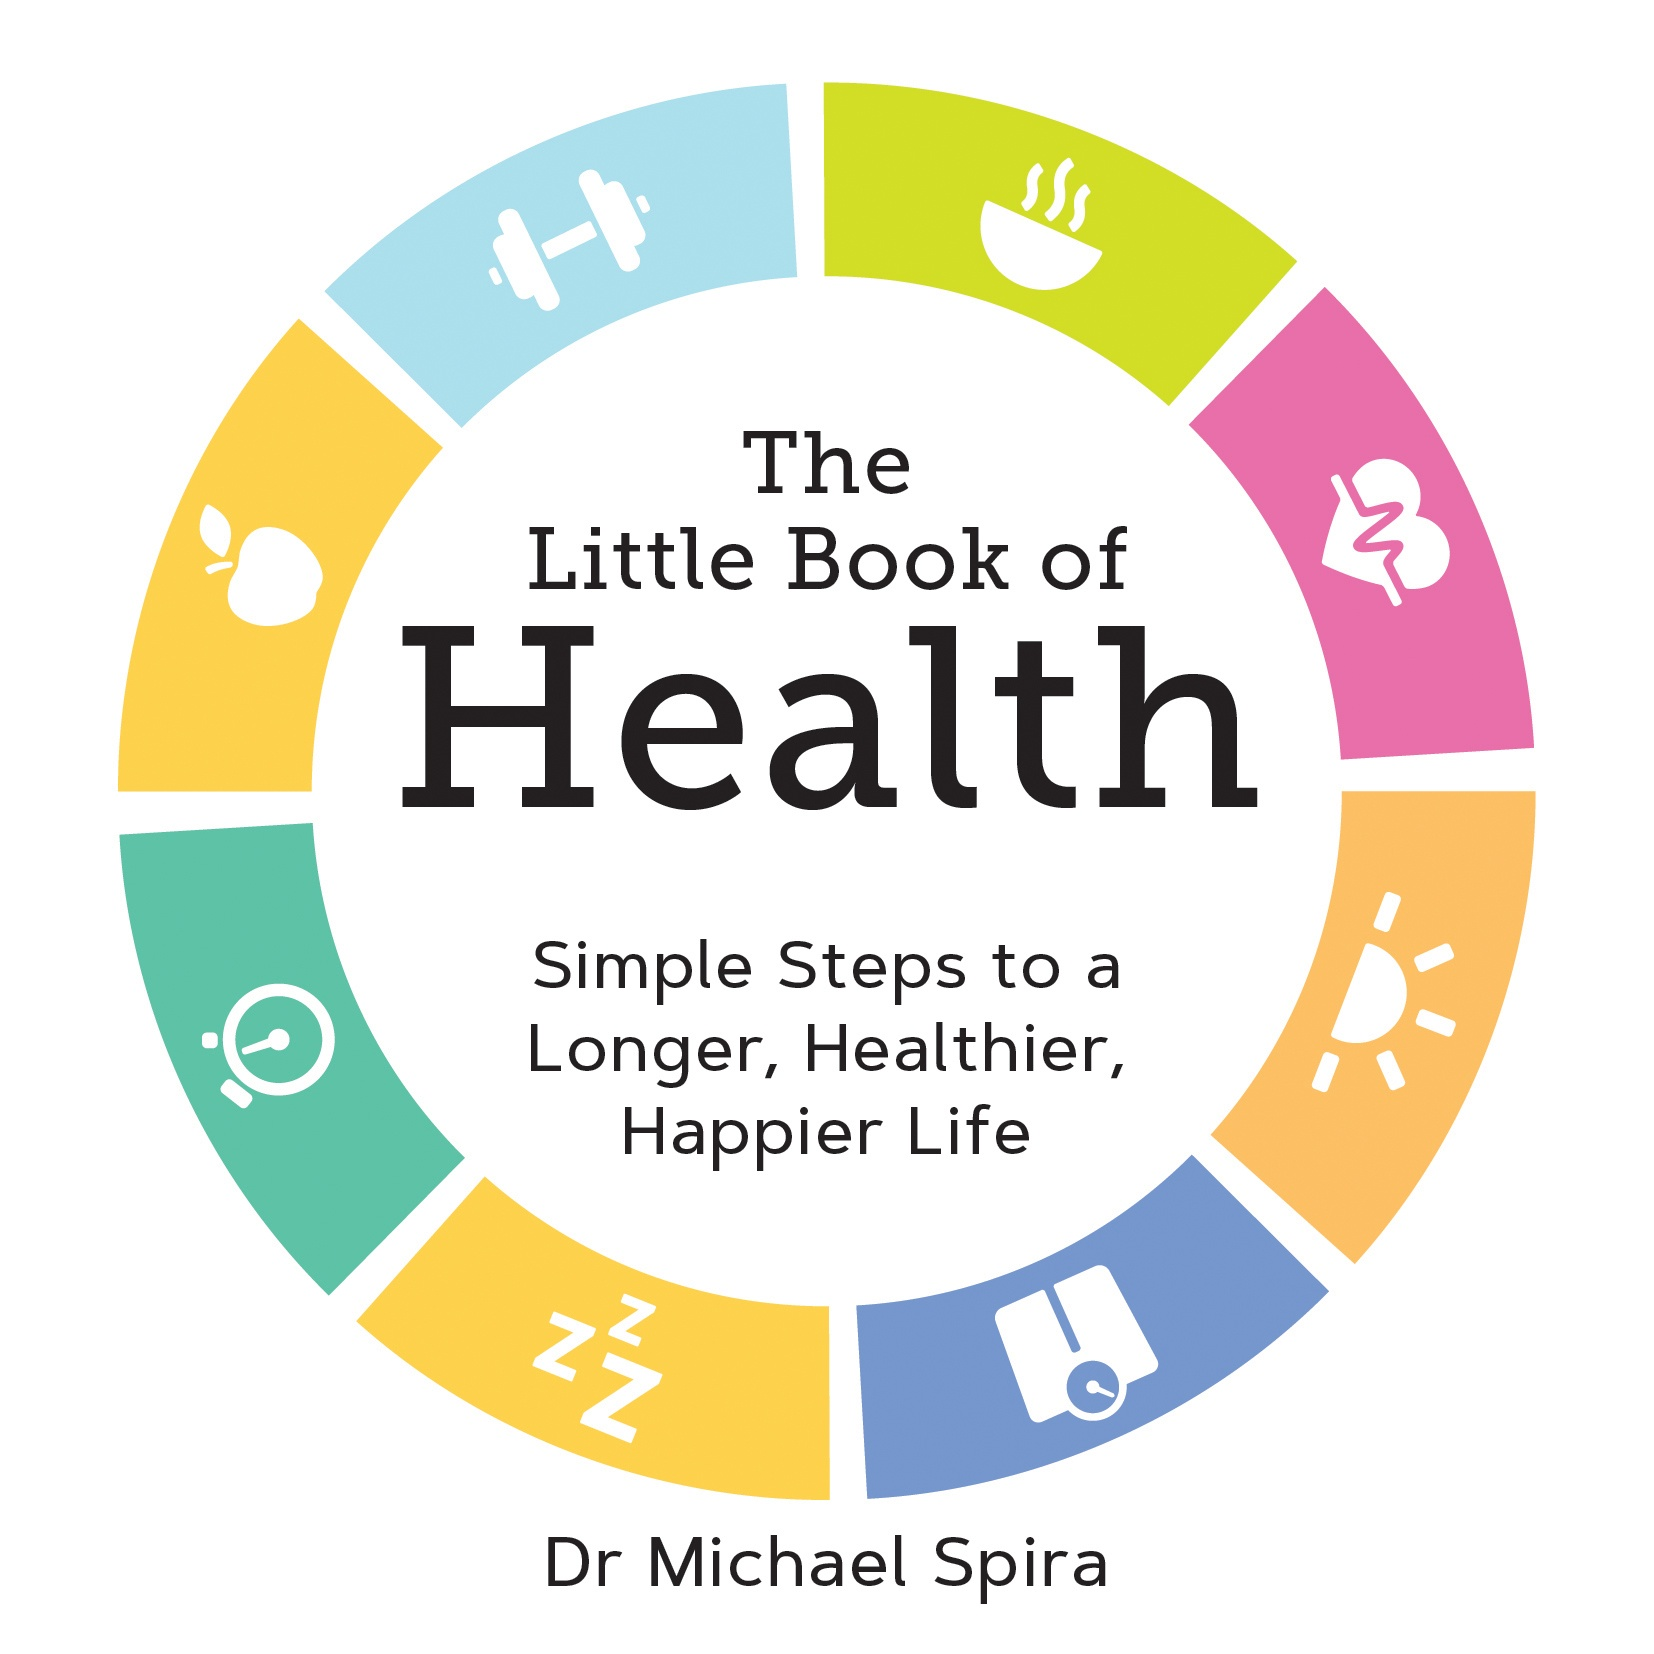 The Little Book of Health